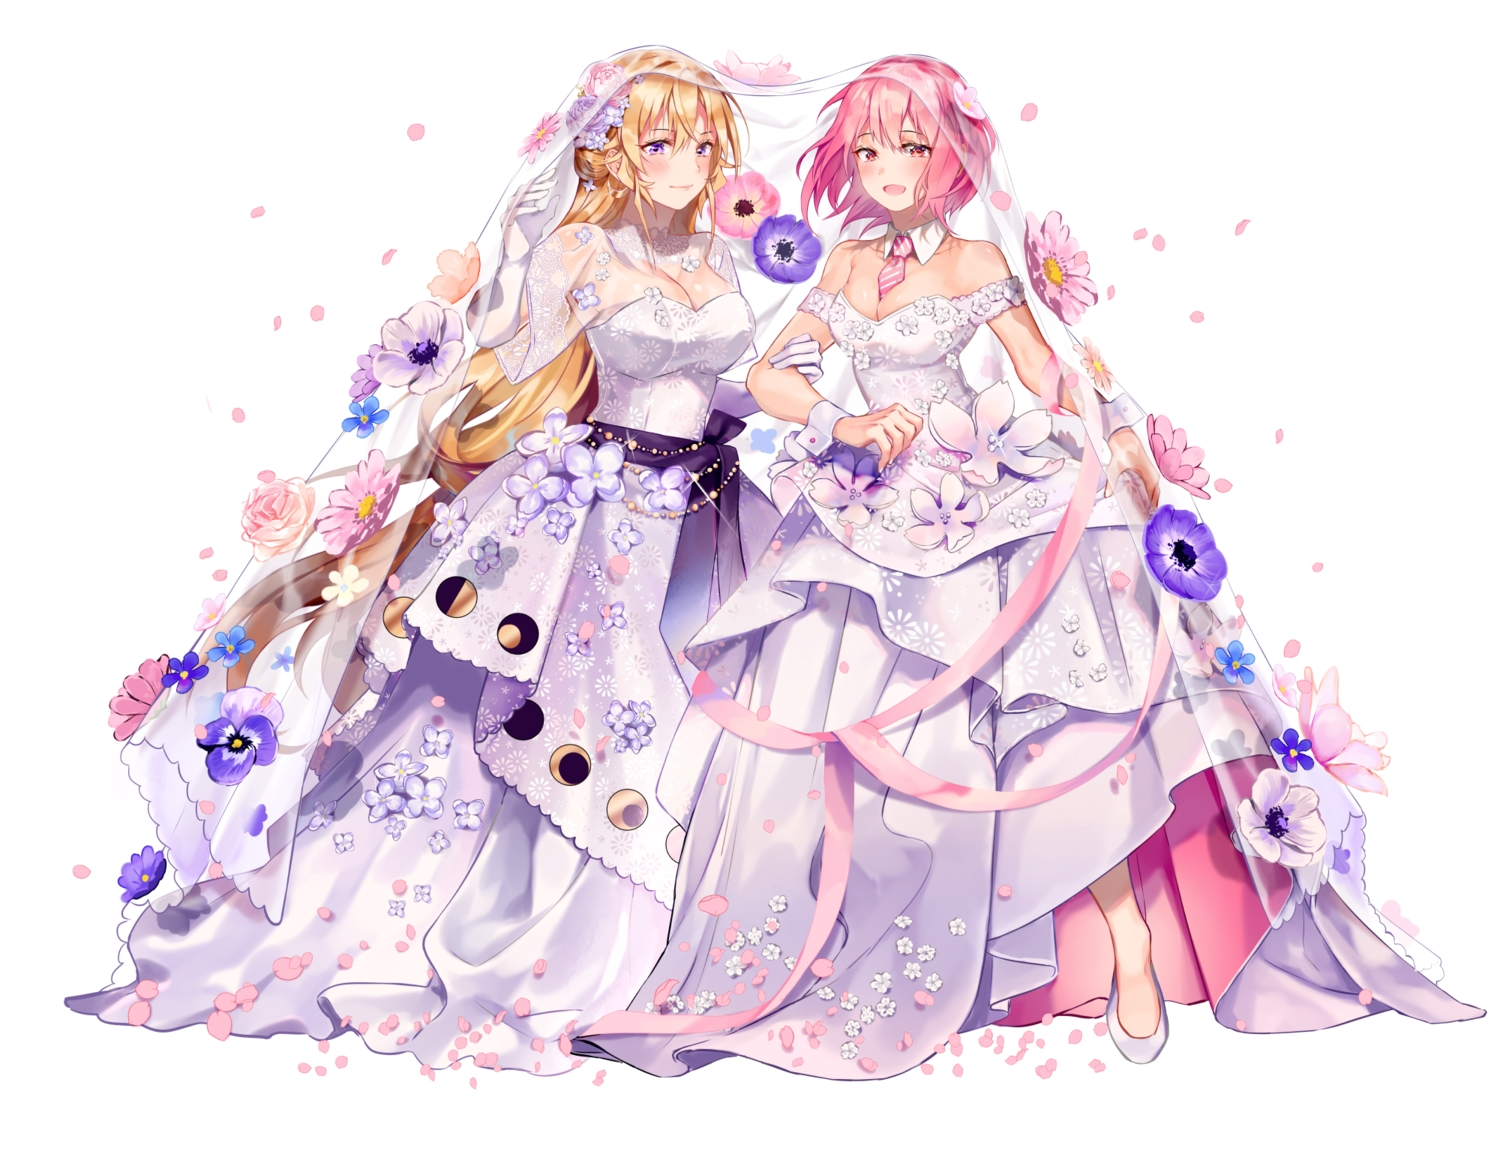 2girls aliasing arato_hisako blonde_hair blush breasts cleavage elbow_gloves flowers gloves heikong long_hair nakiri_erina petals pink_hair purple_eyes red_eyes ribbons rose see_through shokugeki_no_souma short_hair shoujo_ai tie wedding wedding_attire white wristwear